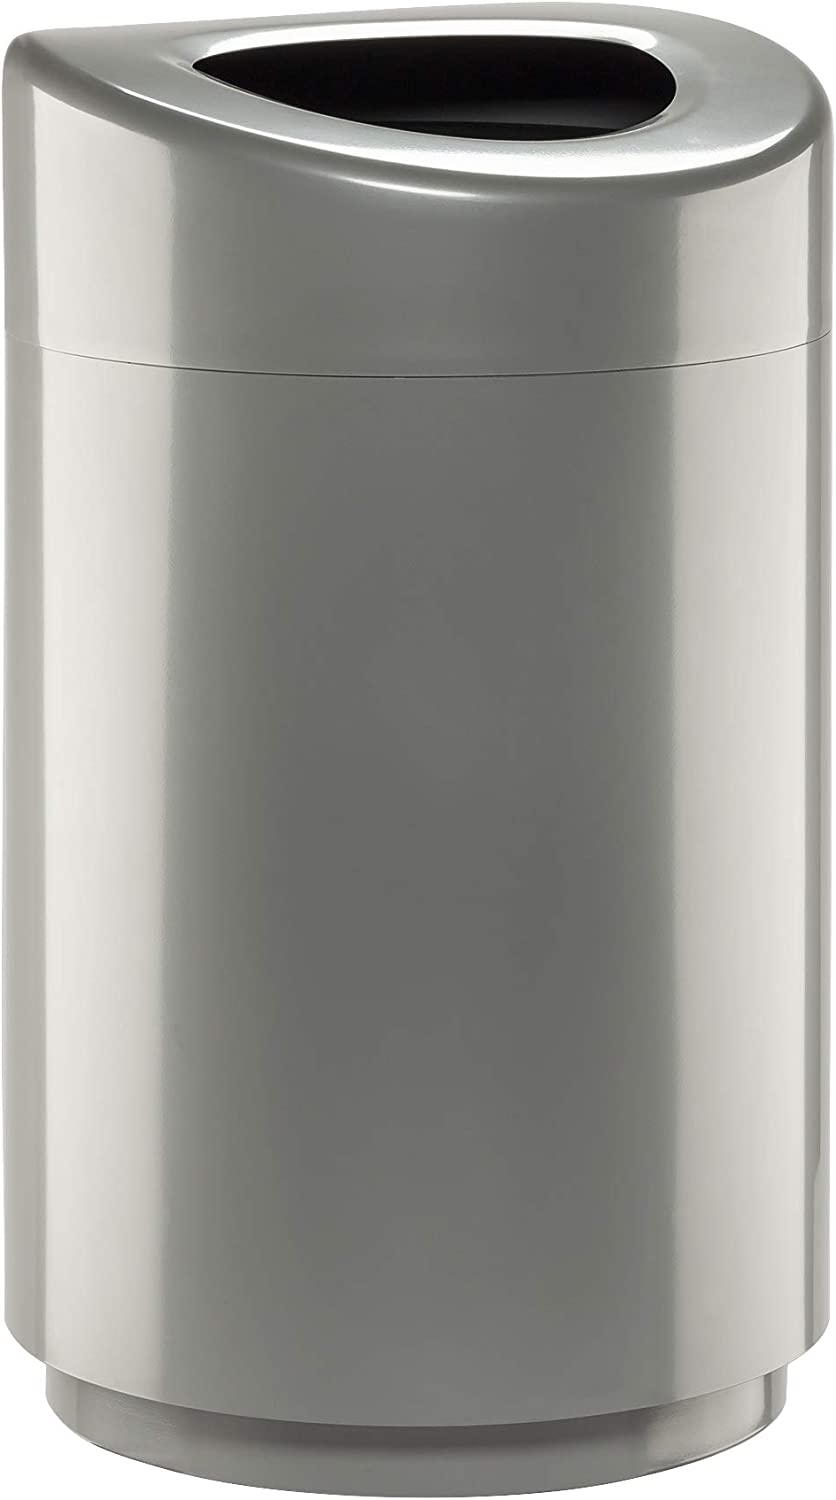 Safco Products Open Top Trash Receptacle with Liner 9920SL, Silver, 30 Gallon Capacity, Hands-Free Disposal, Modern Styling